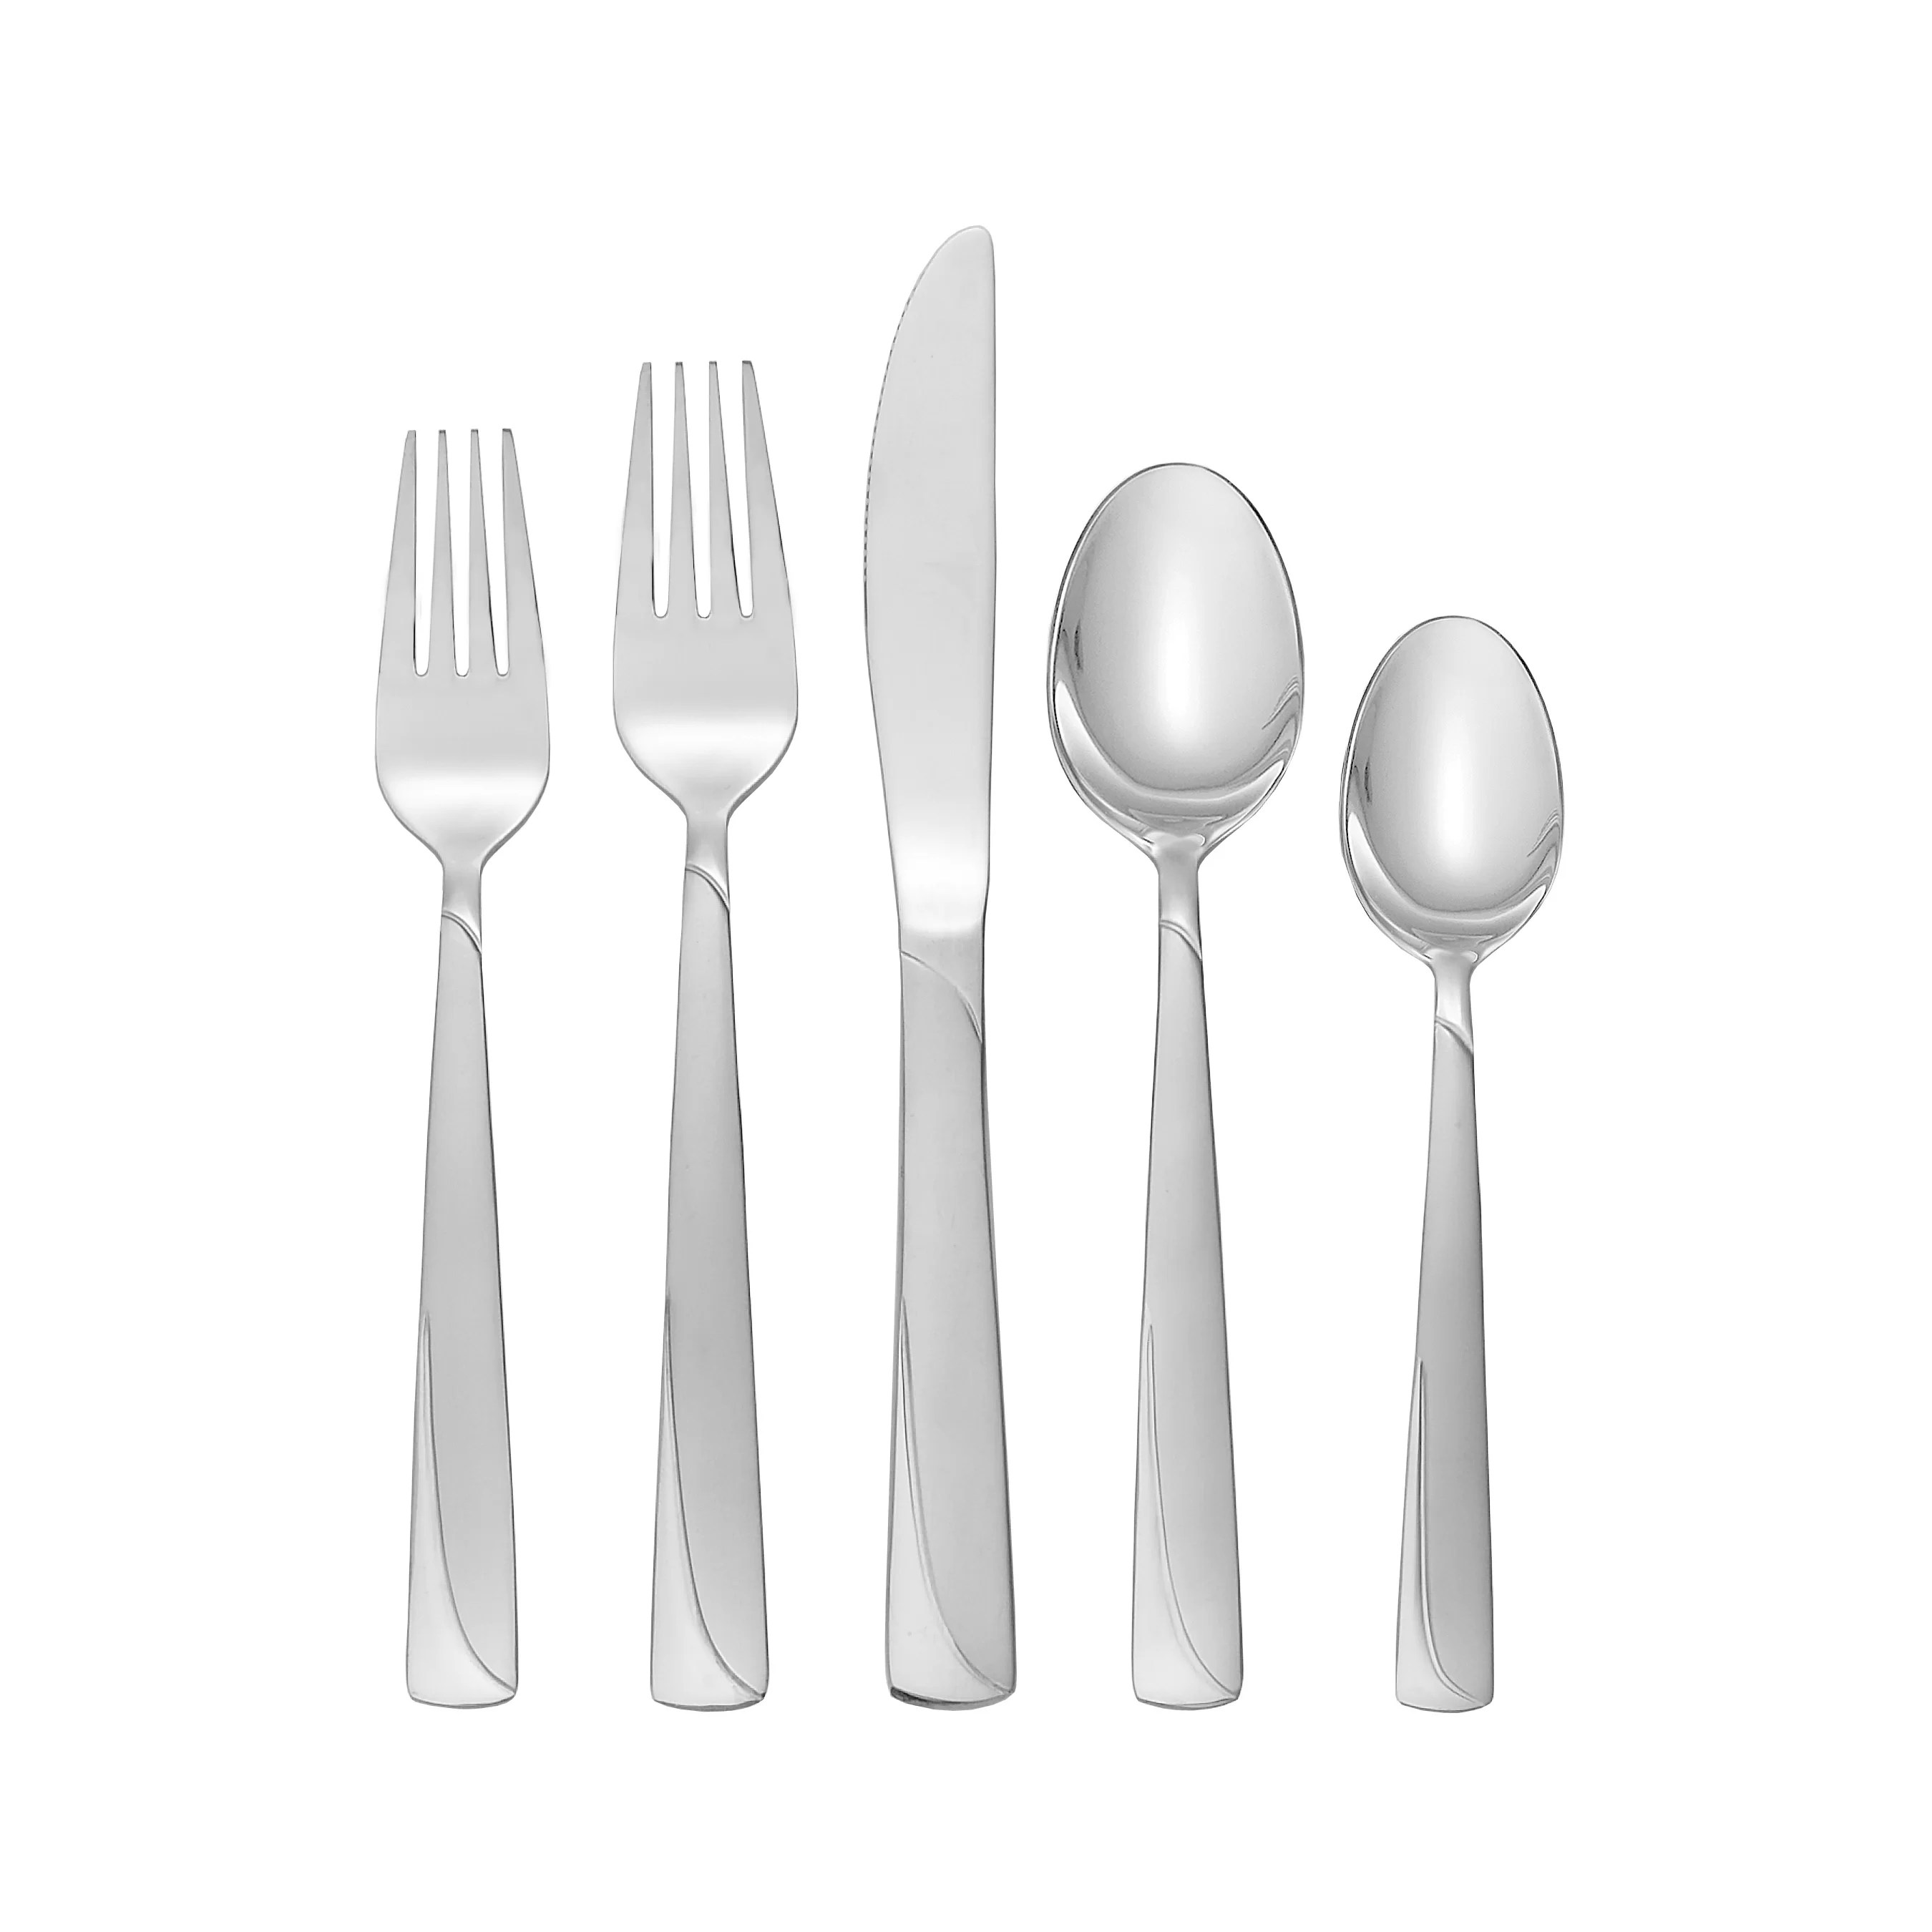 Chaise Spoon Madeline 74 Piece Flatware Set